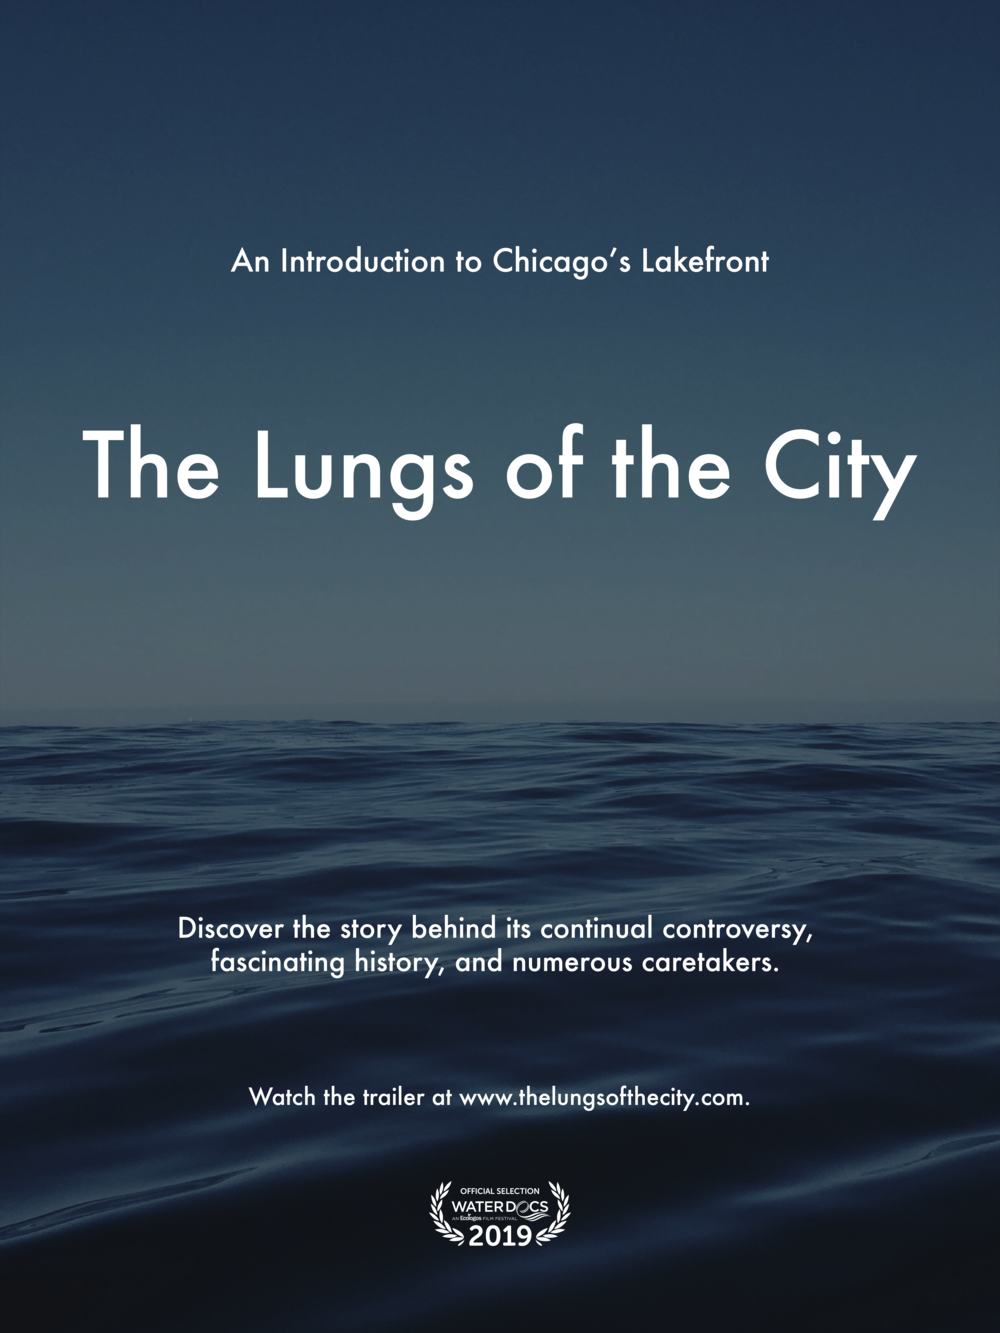 The Lungs of the City Poster with WD laurels.png